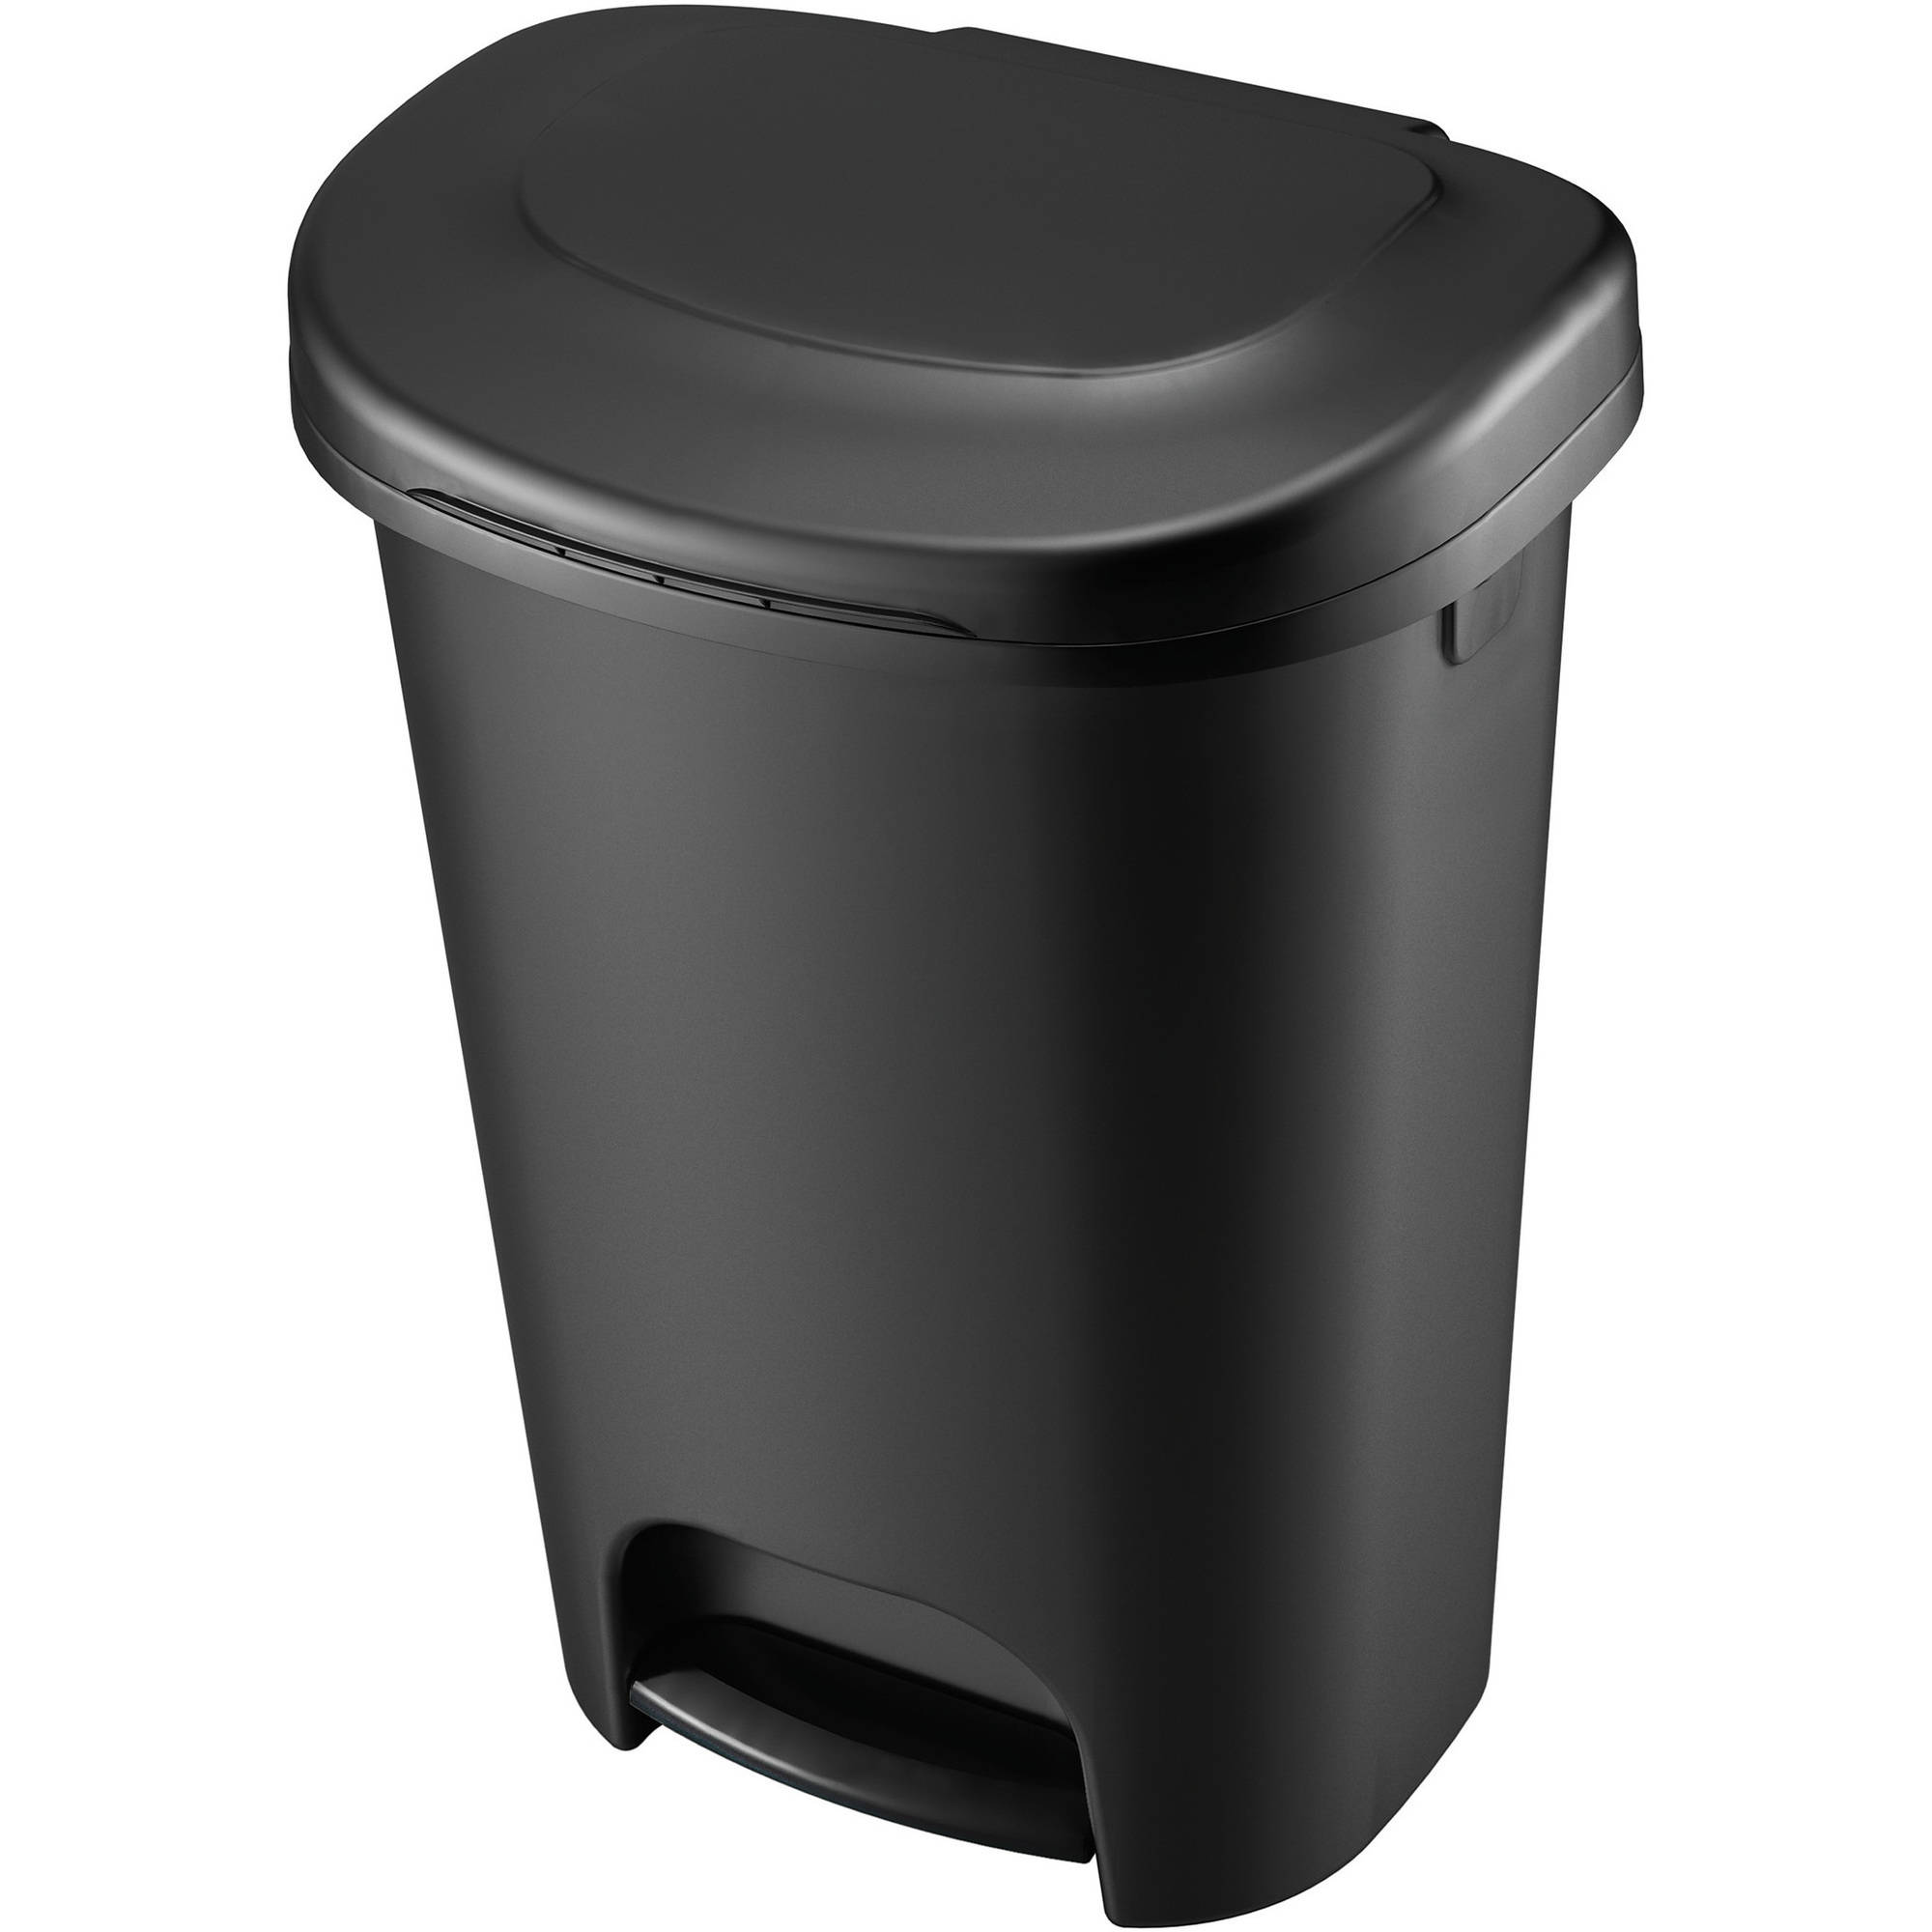 Rubbermaid 13-Gallon Step On Wastebasket, Black by Newell Rubbermaid